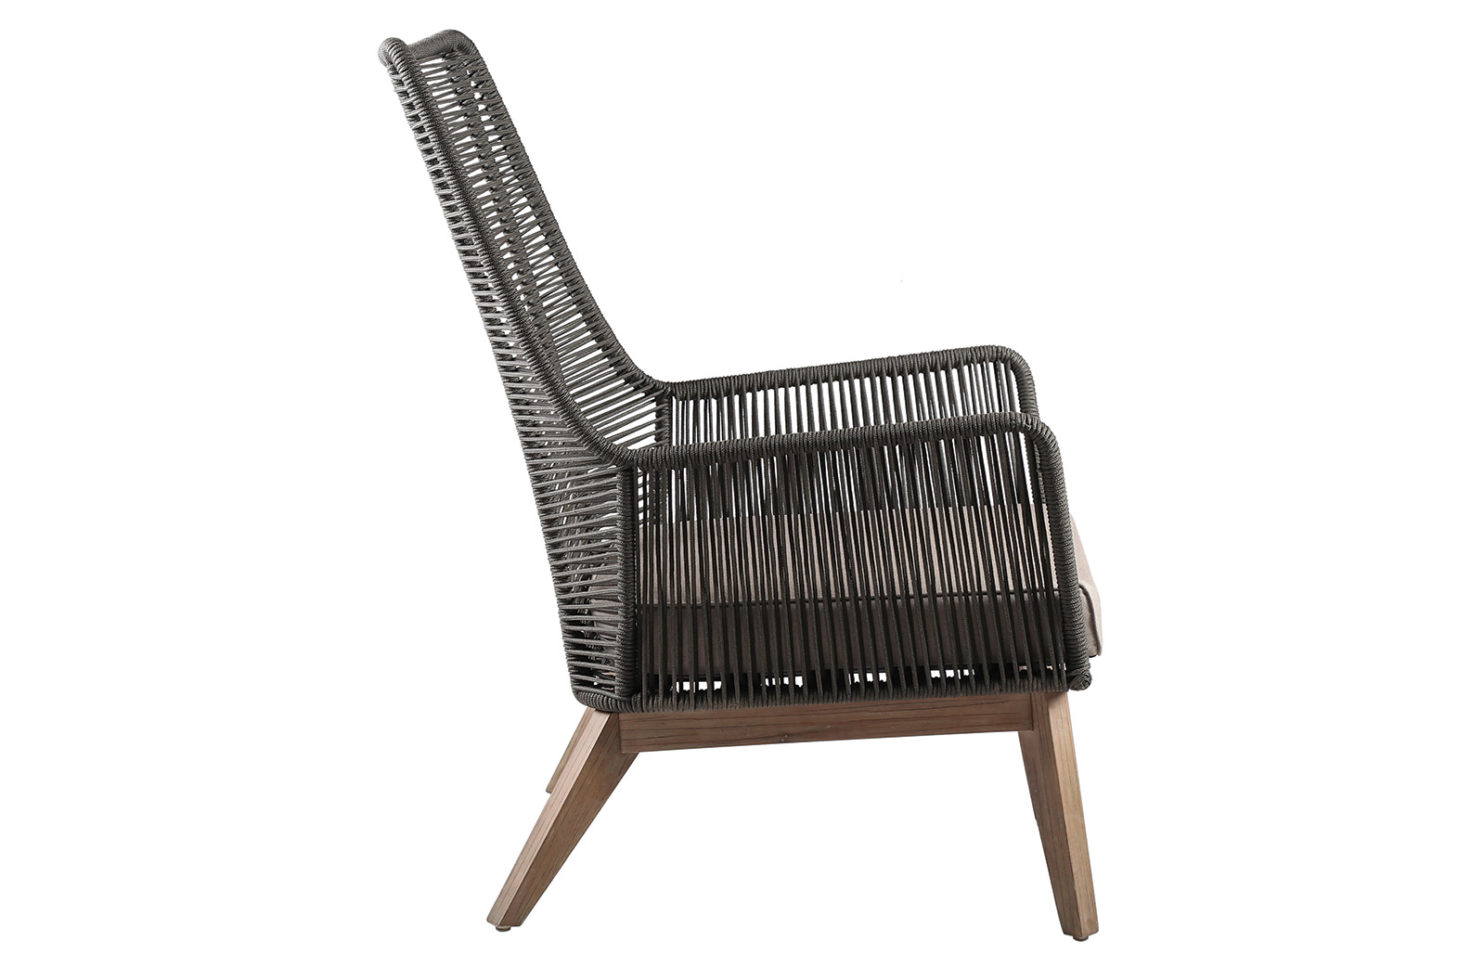 marco polo lounge chair 504FT415P2 E 1 side